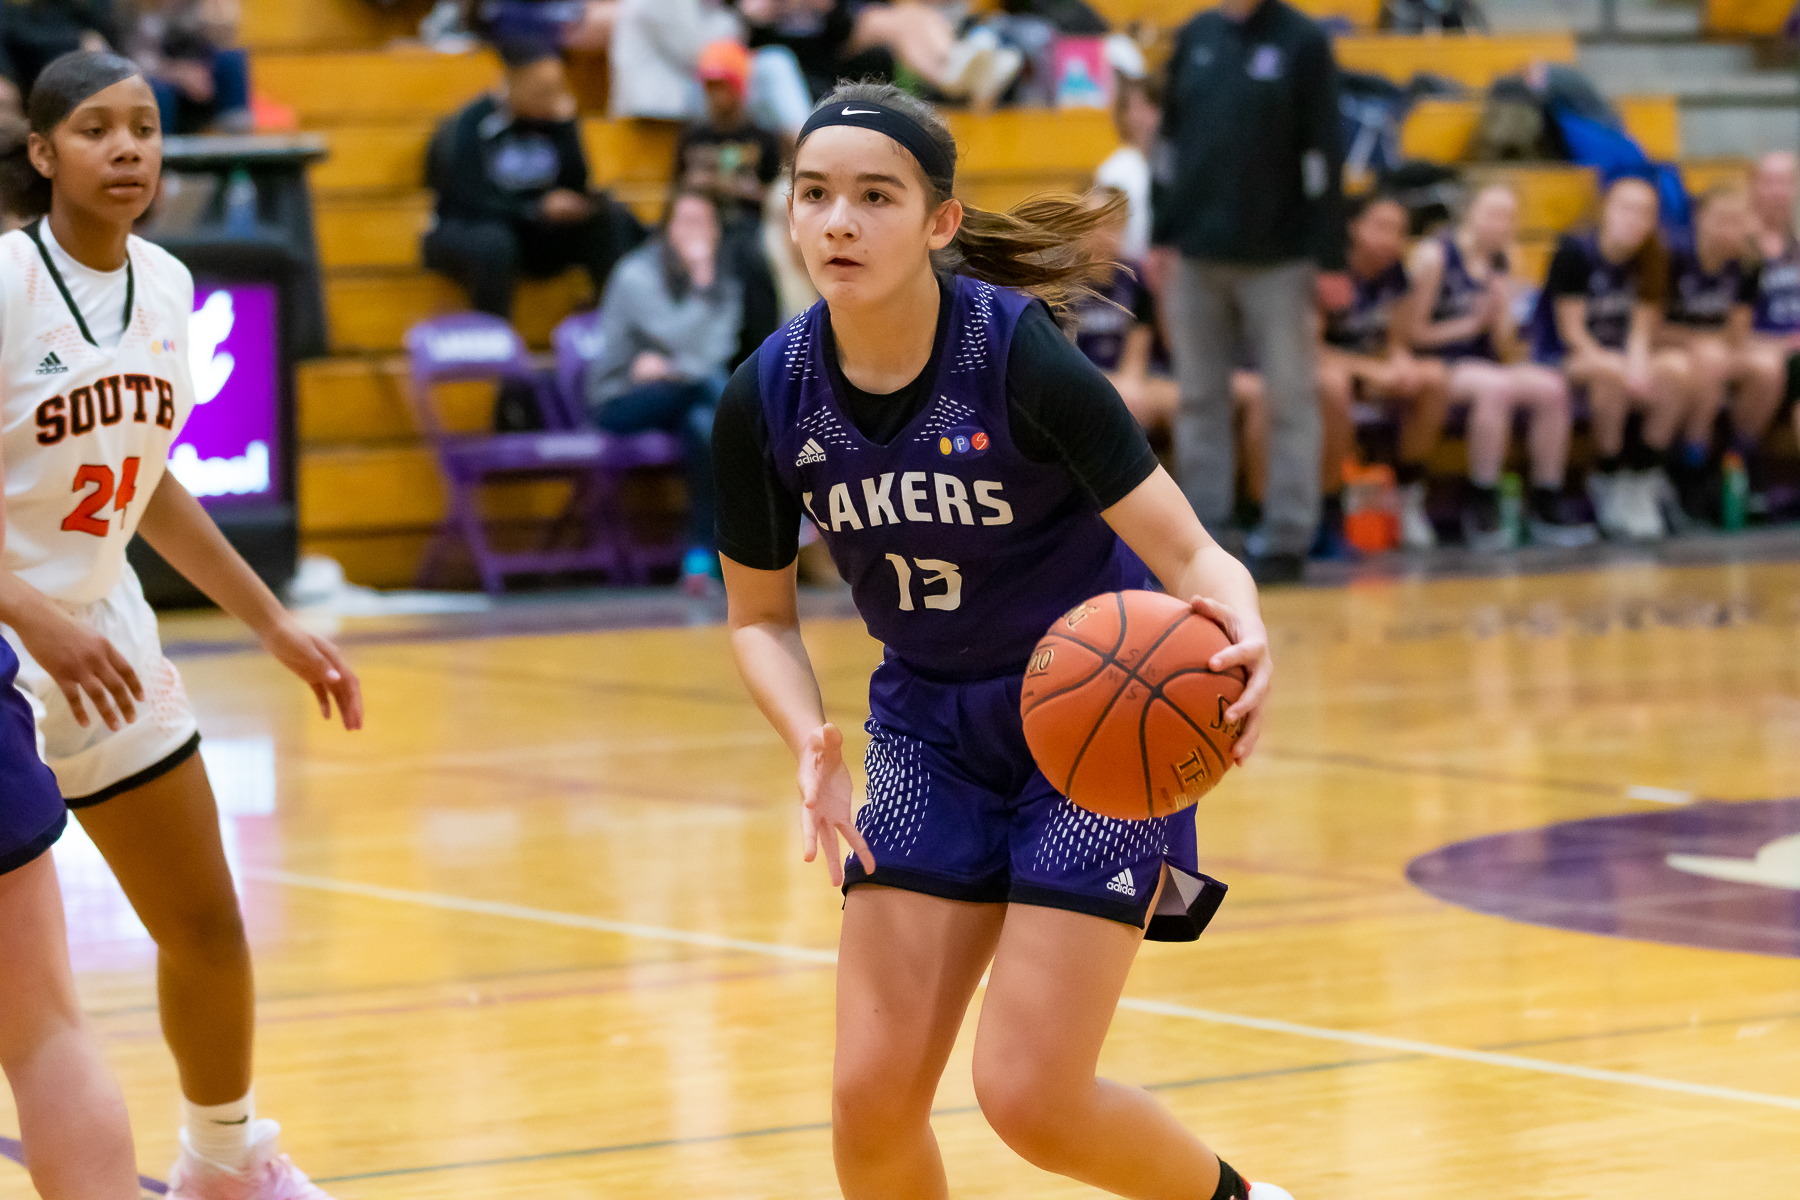 Minneapolis Southwest's freshman guard Virginia Johnson led the Lakers with 11 points in a 63-29 loss to visiting Minneapolis South. Photo by Gary Mukai, SportsEngine